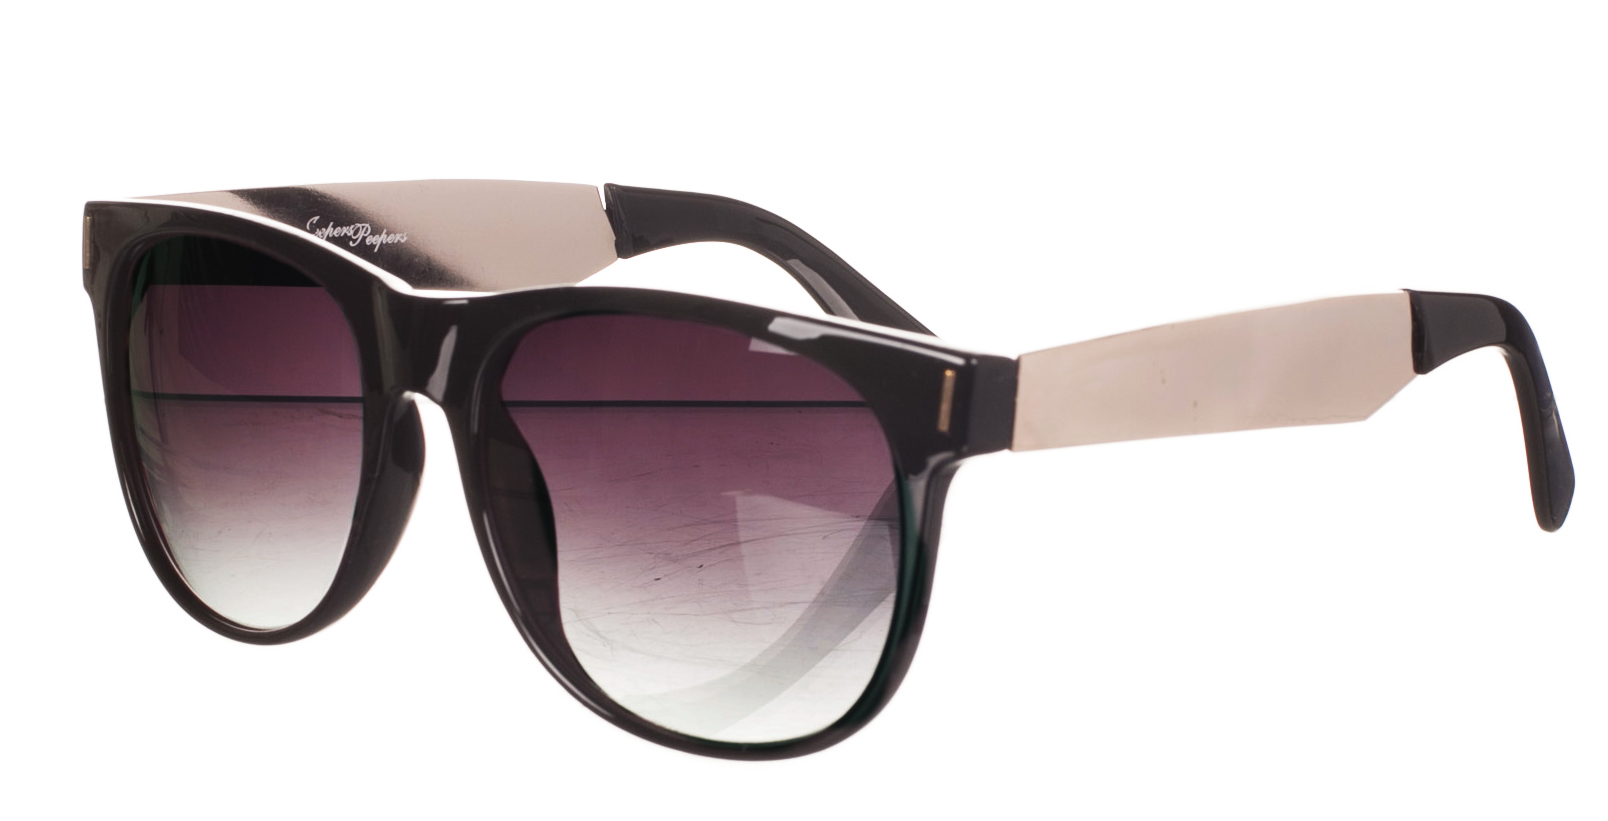 Retro Black And Metal Vincent Wayfarer Sunglasses from Jeepers Peepers £16.99